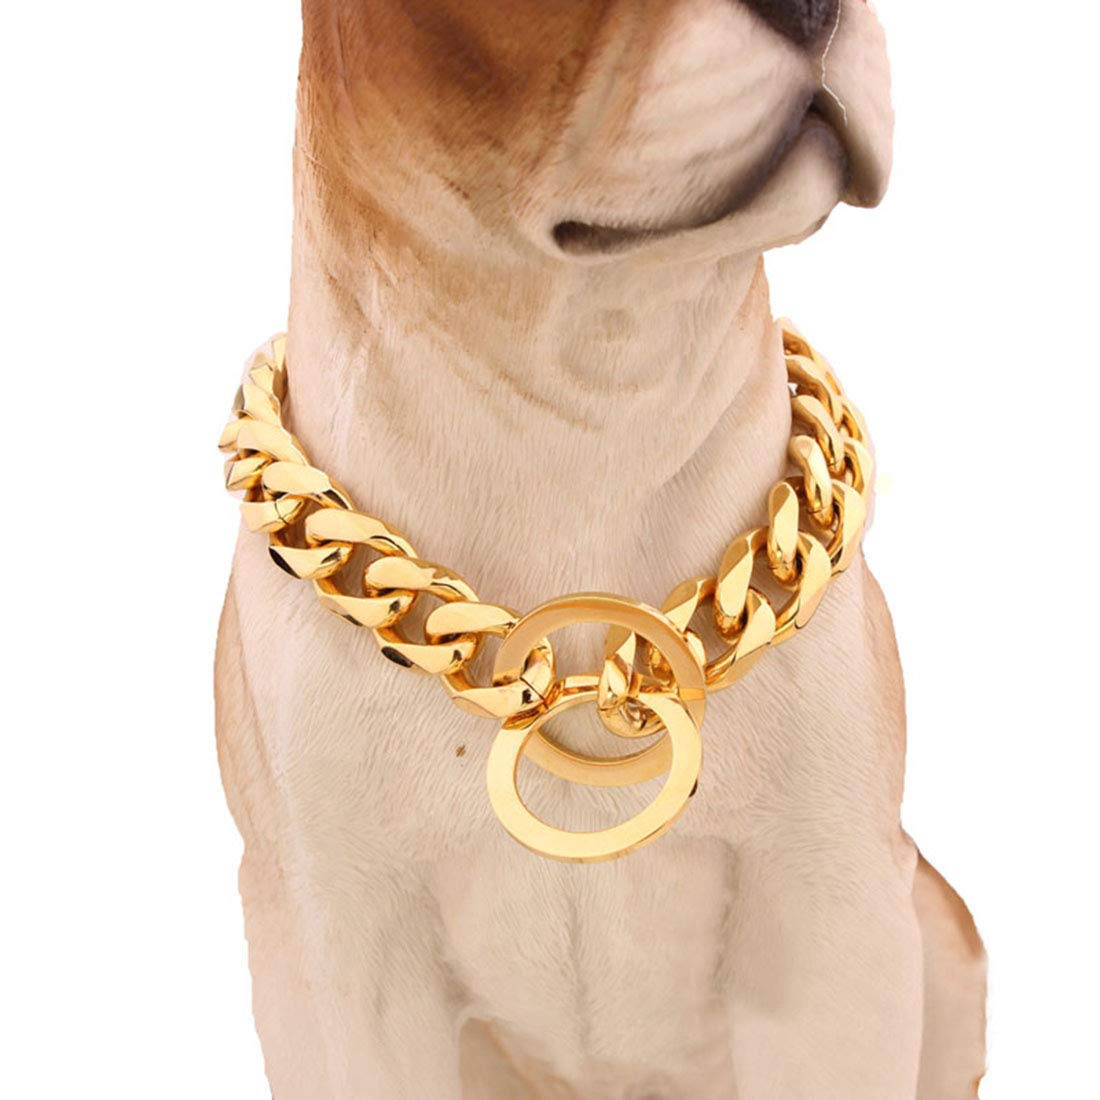 MYTMCW 15mm Wide Hip Hop Dogs Plated Gold 316L Stainless Steel Tone Cut Curb Cuban Link Dog Choke Chain Collar,30inch